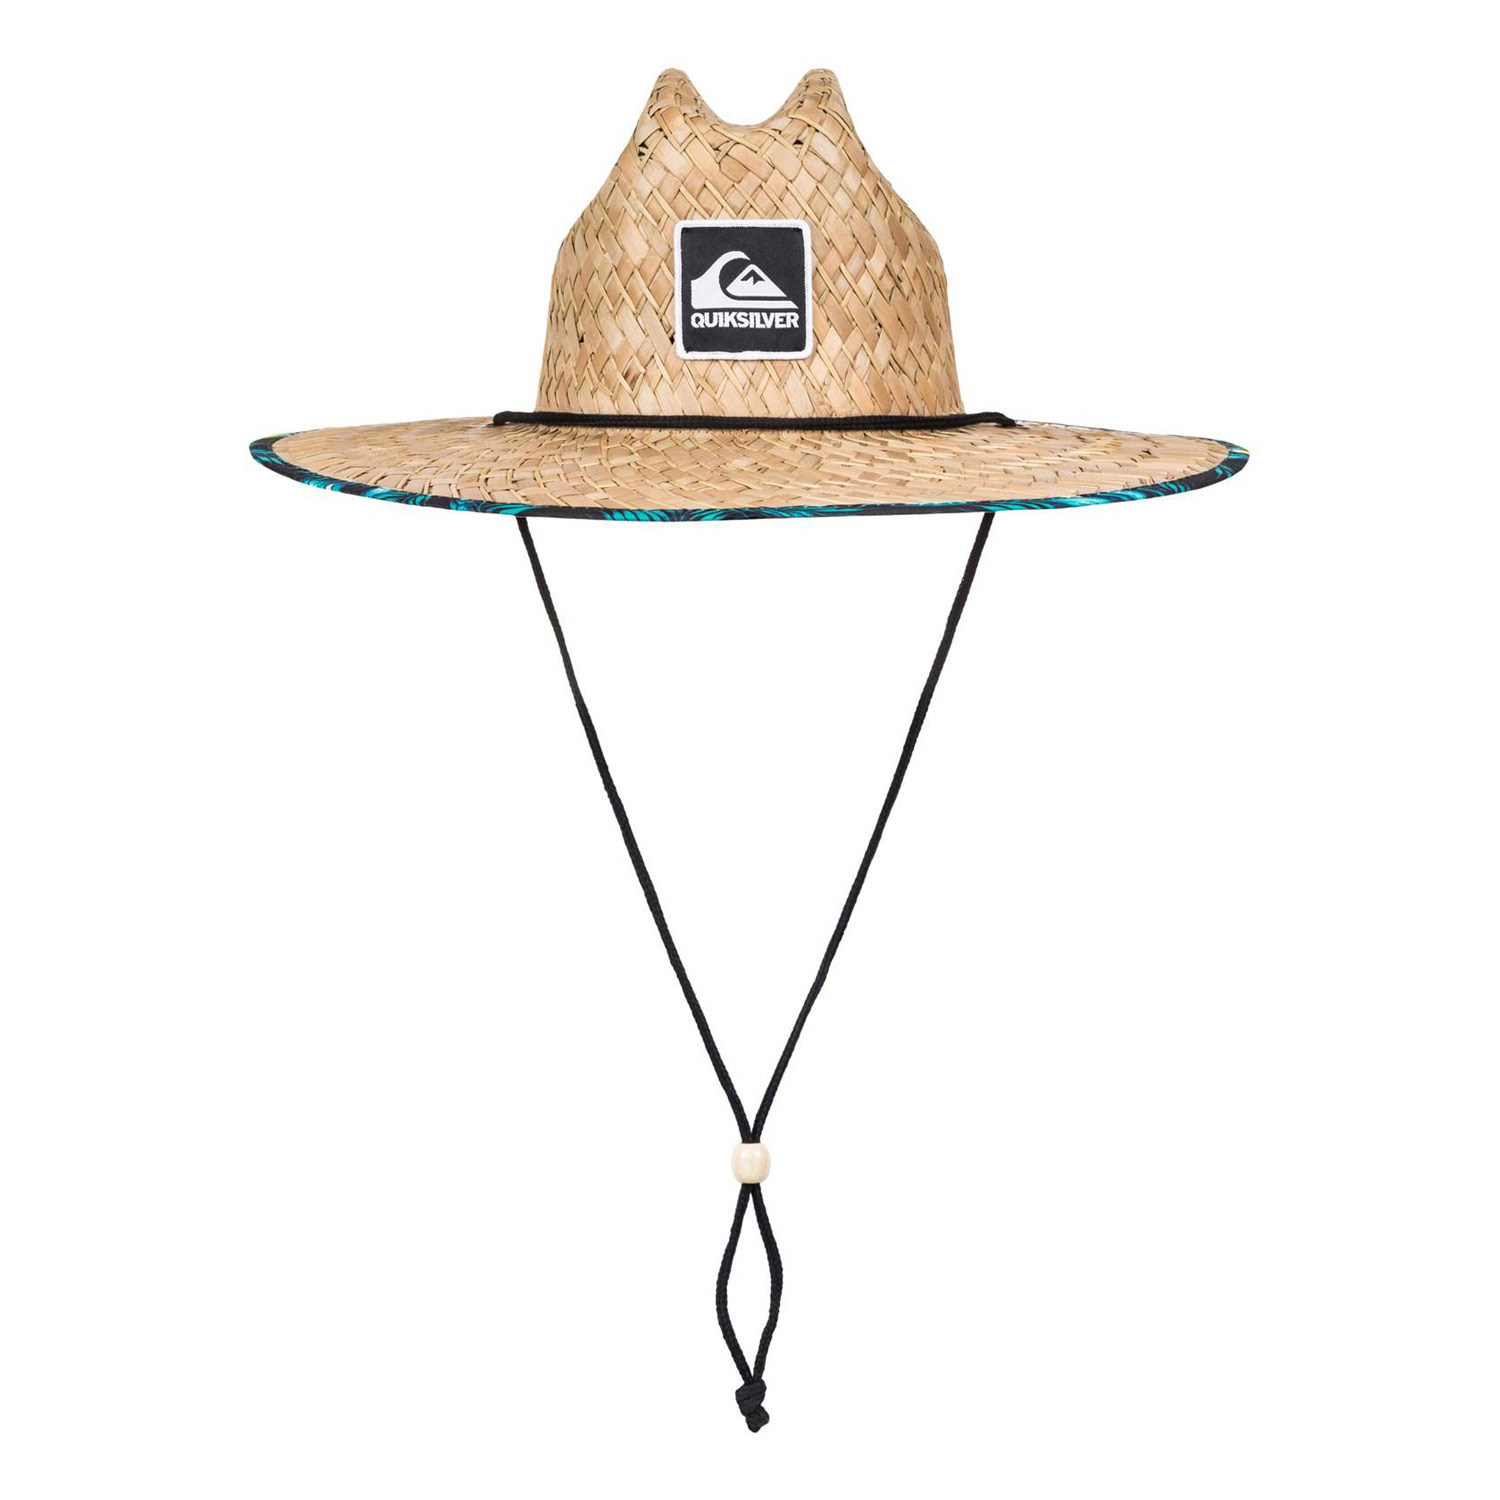 e14b7c74669 Quiksilver mens outsider hat west marine jpg 1500x1500 Quicksilver straw hat